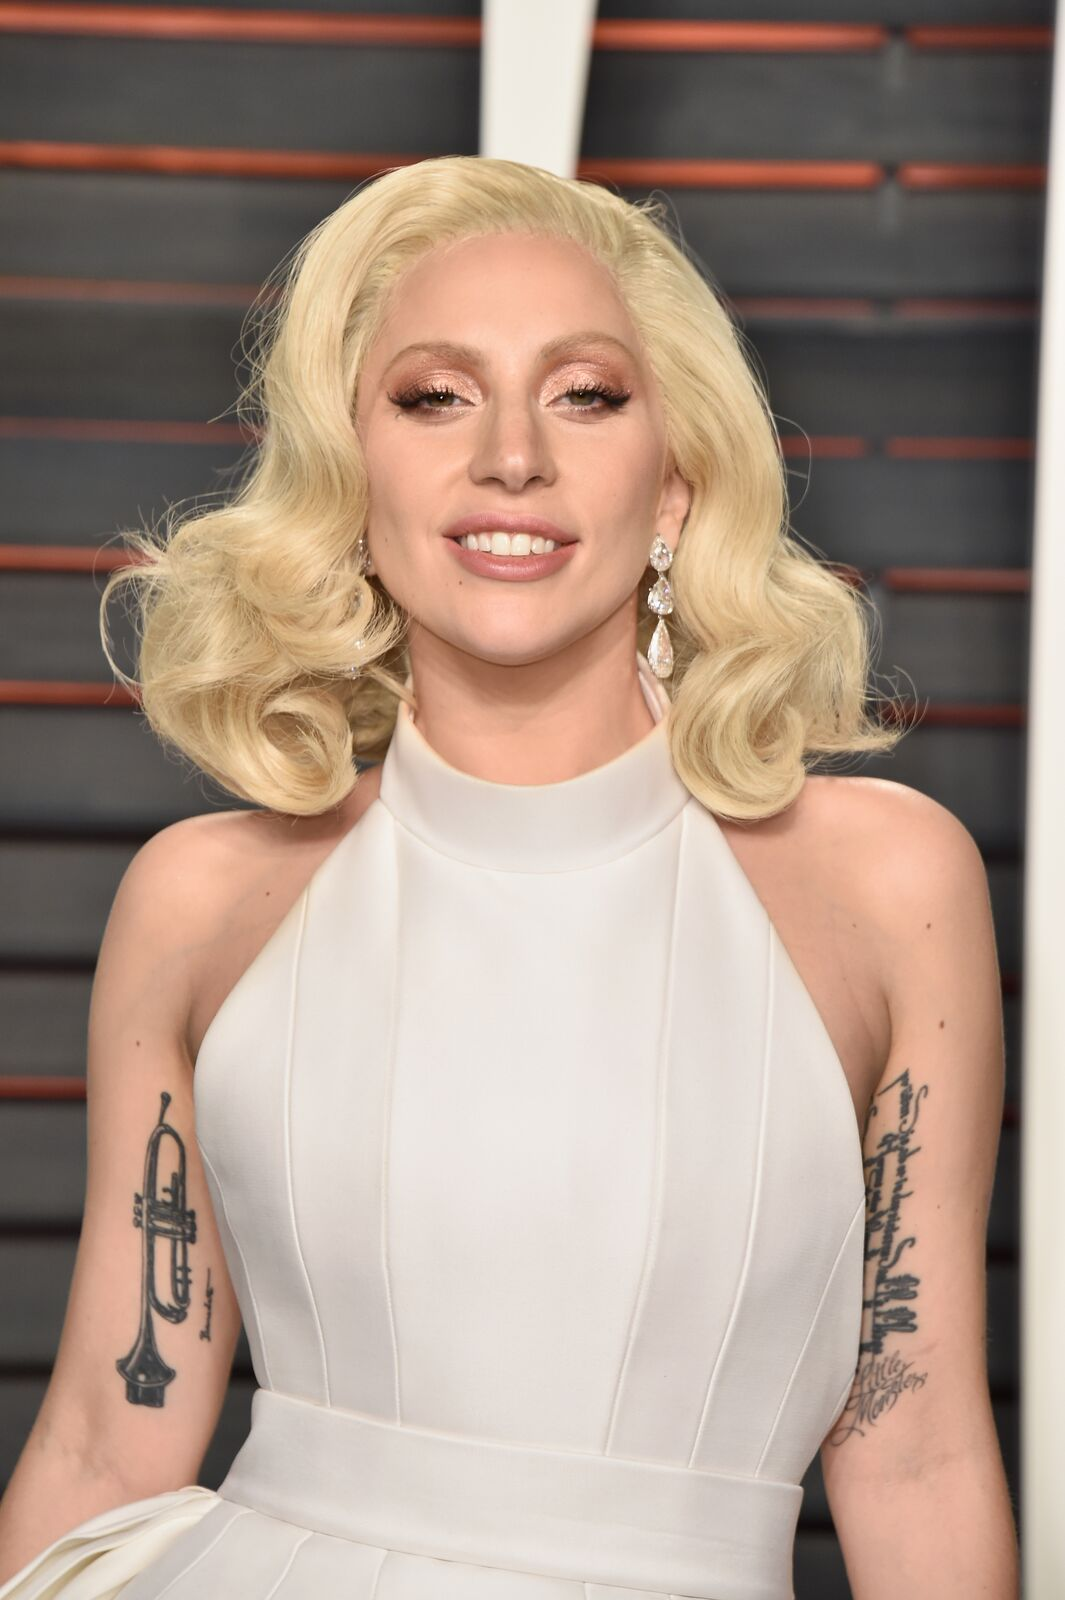 Recording artist Lady Gaga attends the 2016 Vanity Fair Oscar Party Hosted By Graydon Carter at the Wallis Annenberg Center for the Performing Arts on February 28, 2016 | Photo: Getty Images